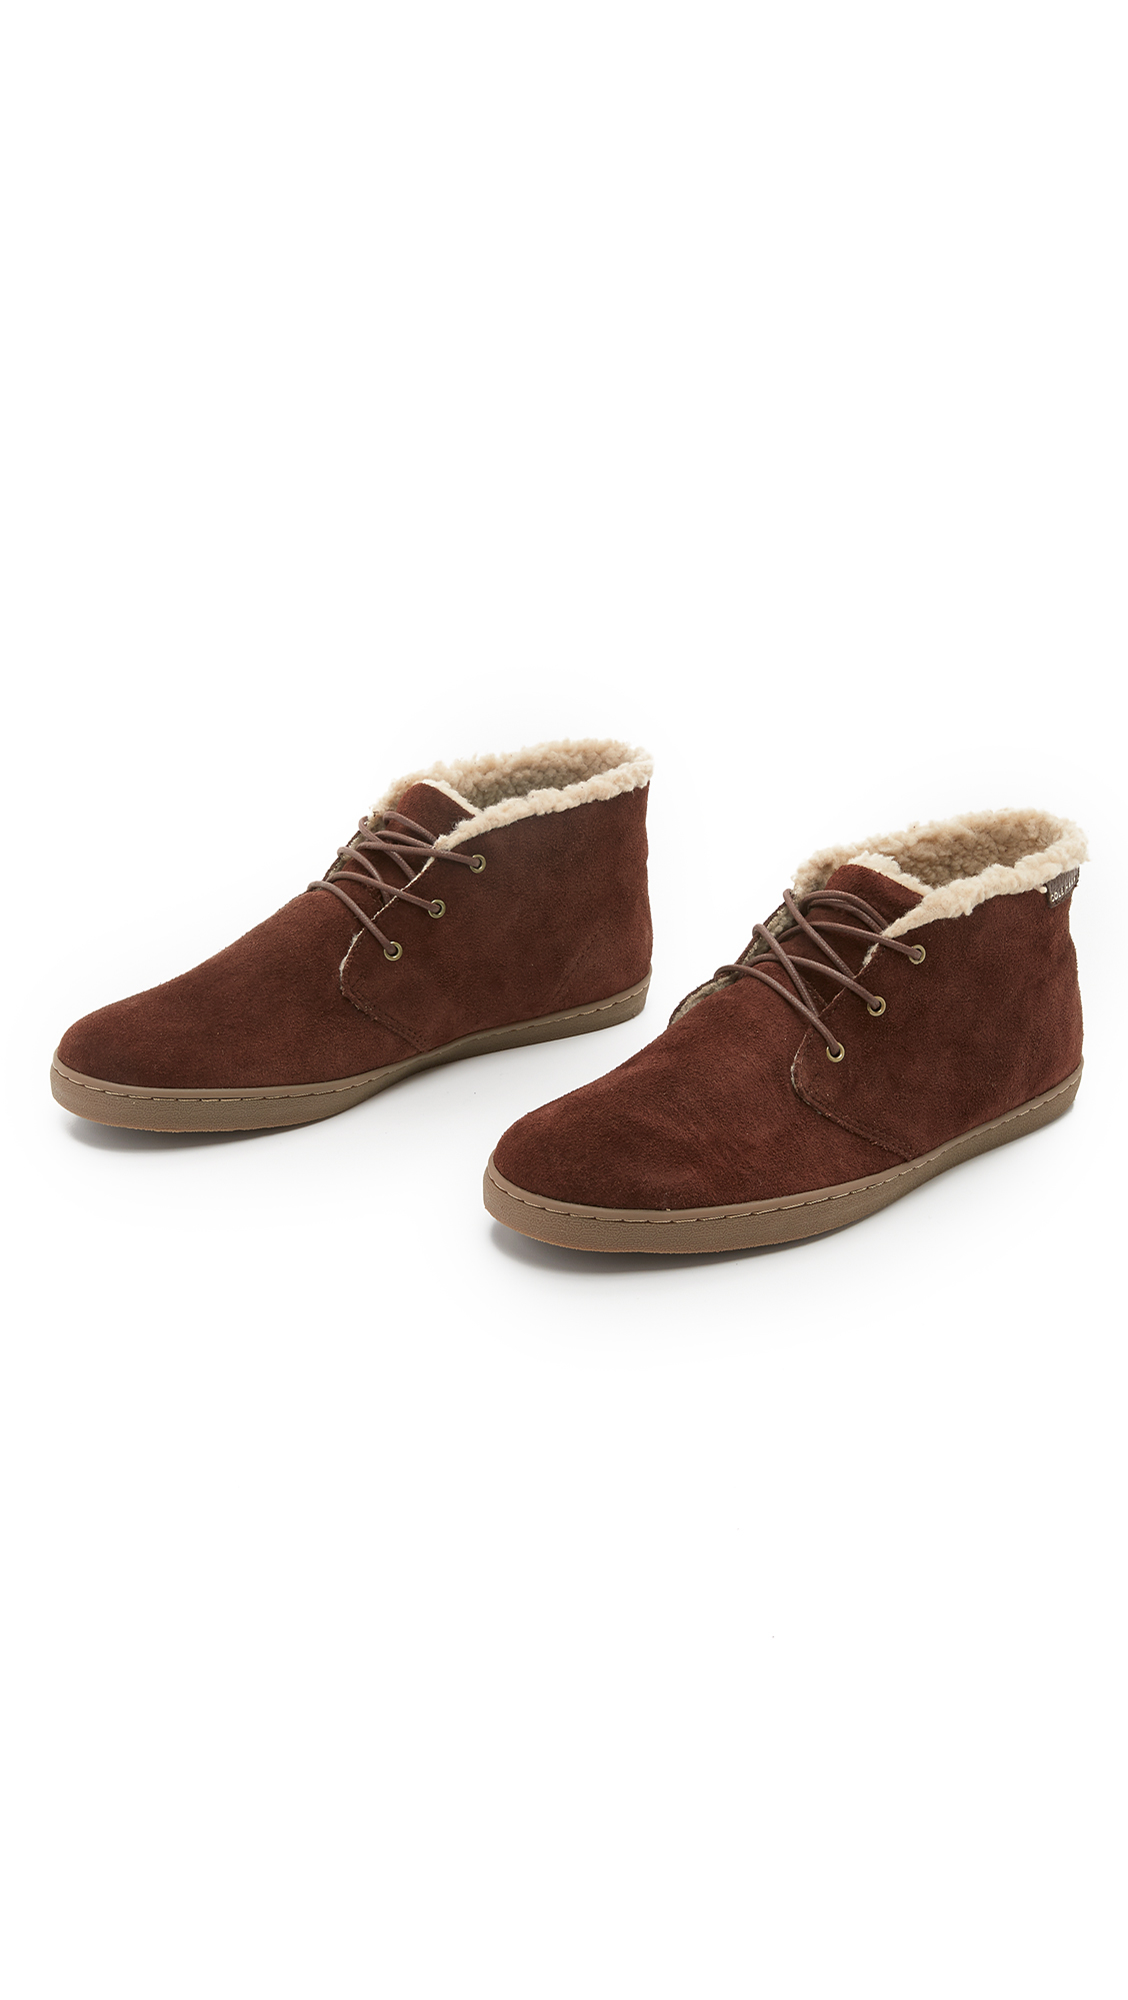 cole haan pinch suede weekender chukka boots in brown for